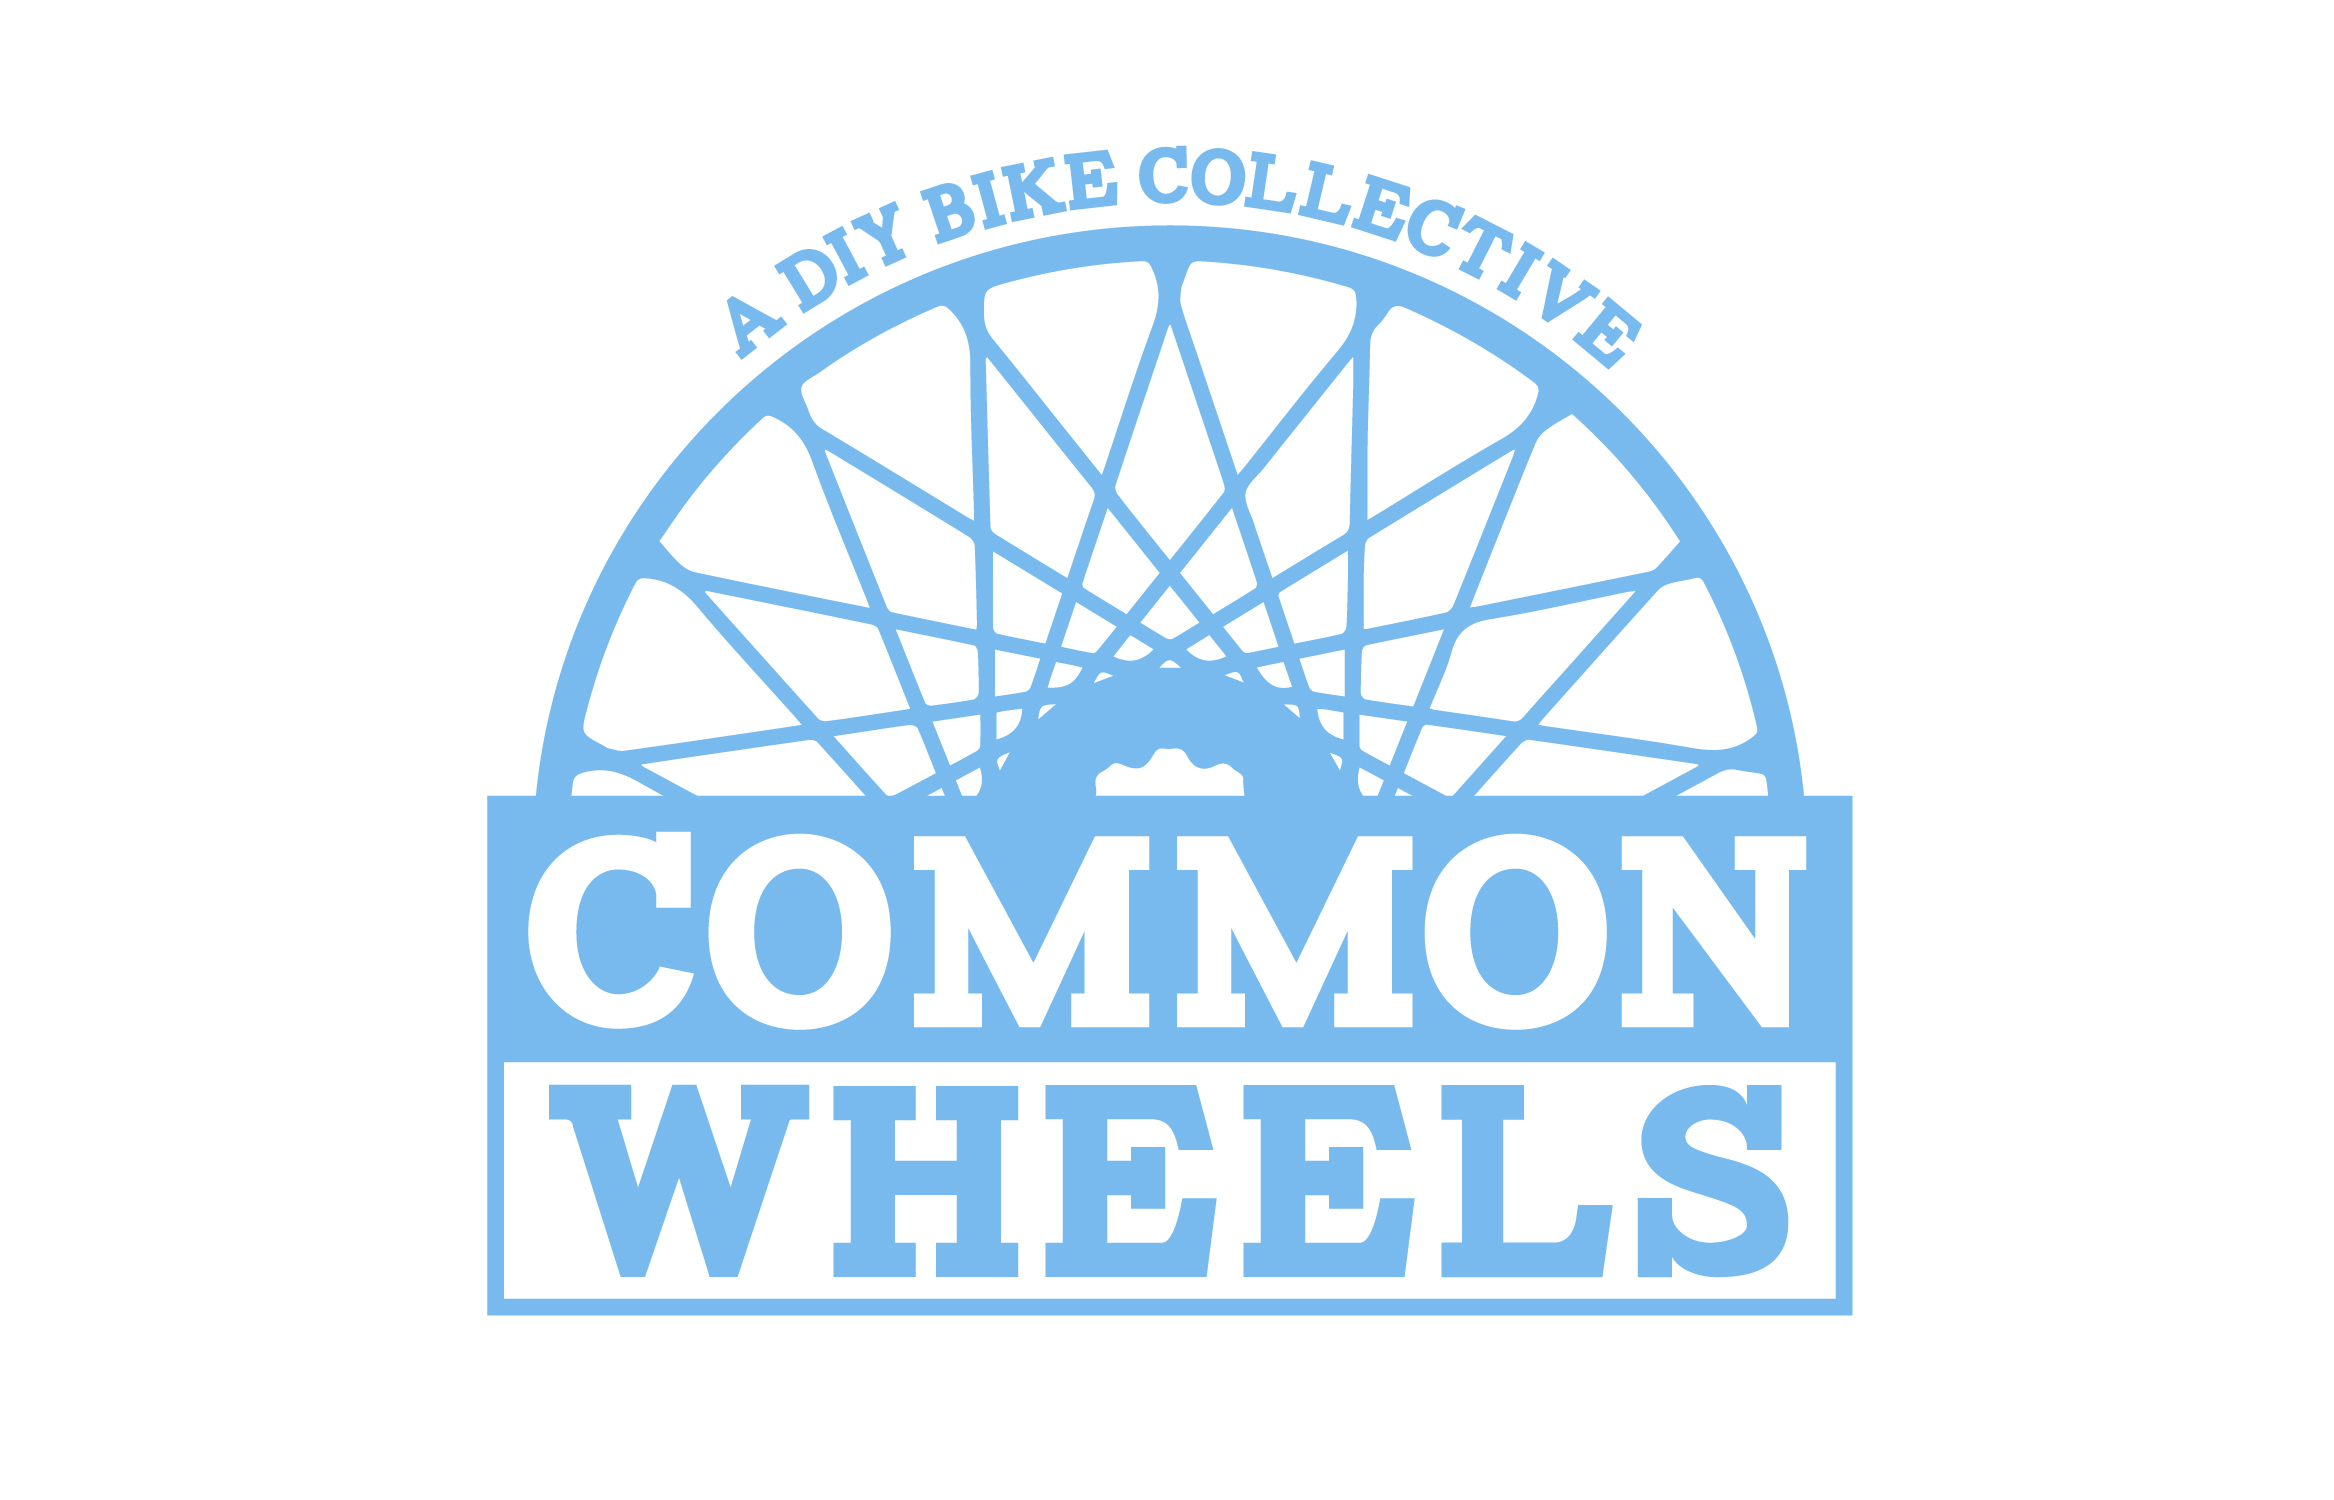 Common Wheels, a bicycle co-op that helps teach people to fix their own bikes, needed a logo facelift. We went from a mustachioed man with a unicycle to a modern retro look featuring the Boston city flag blue.